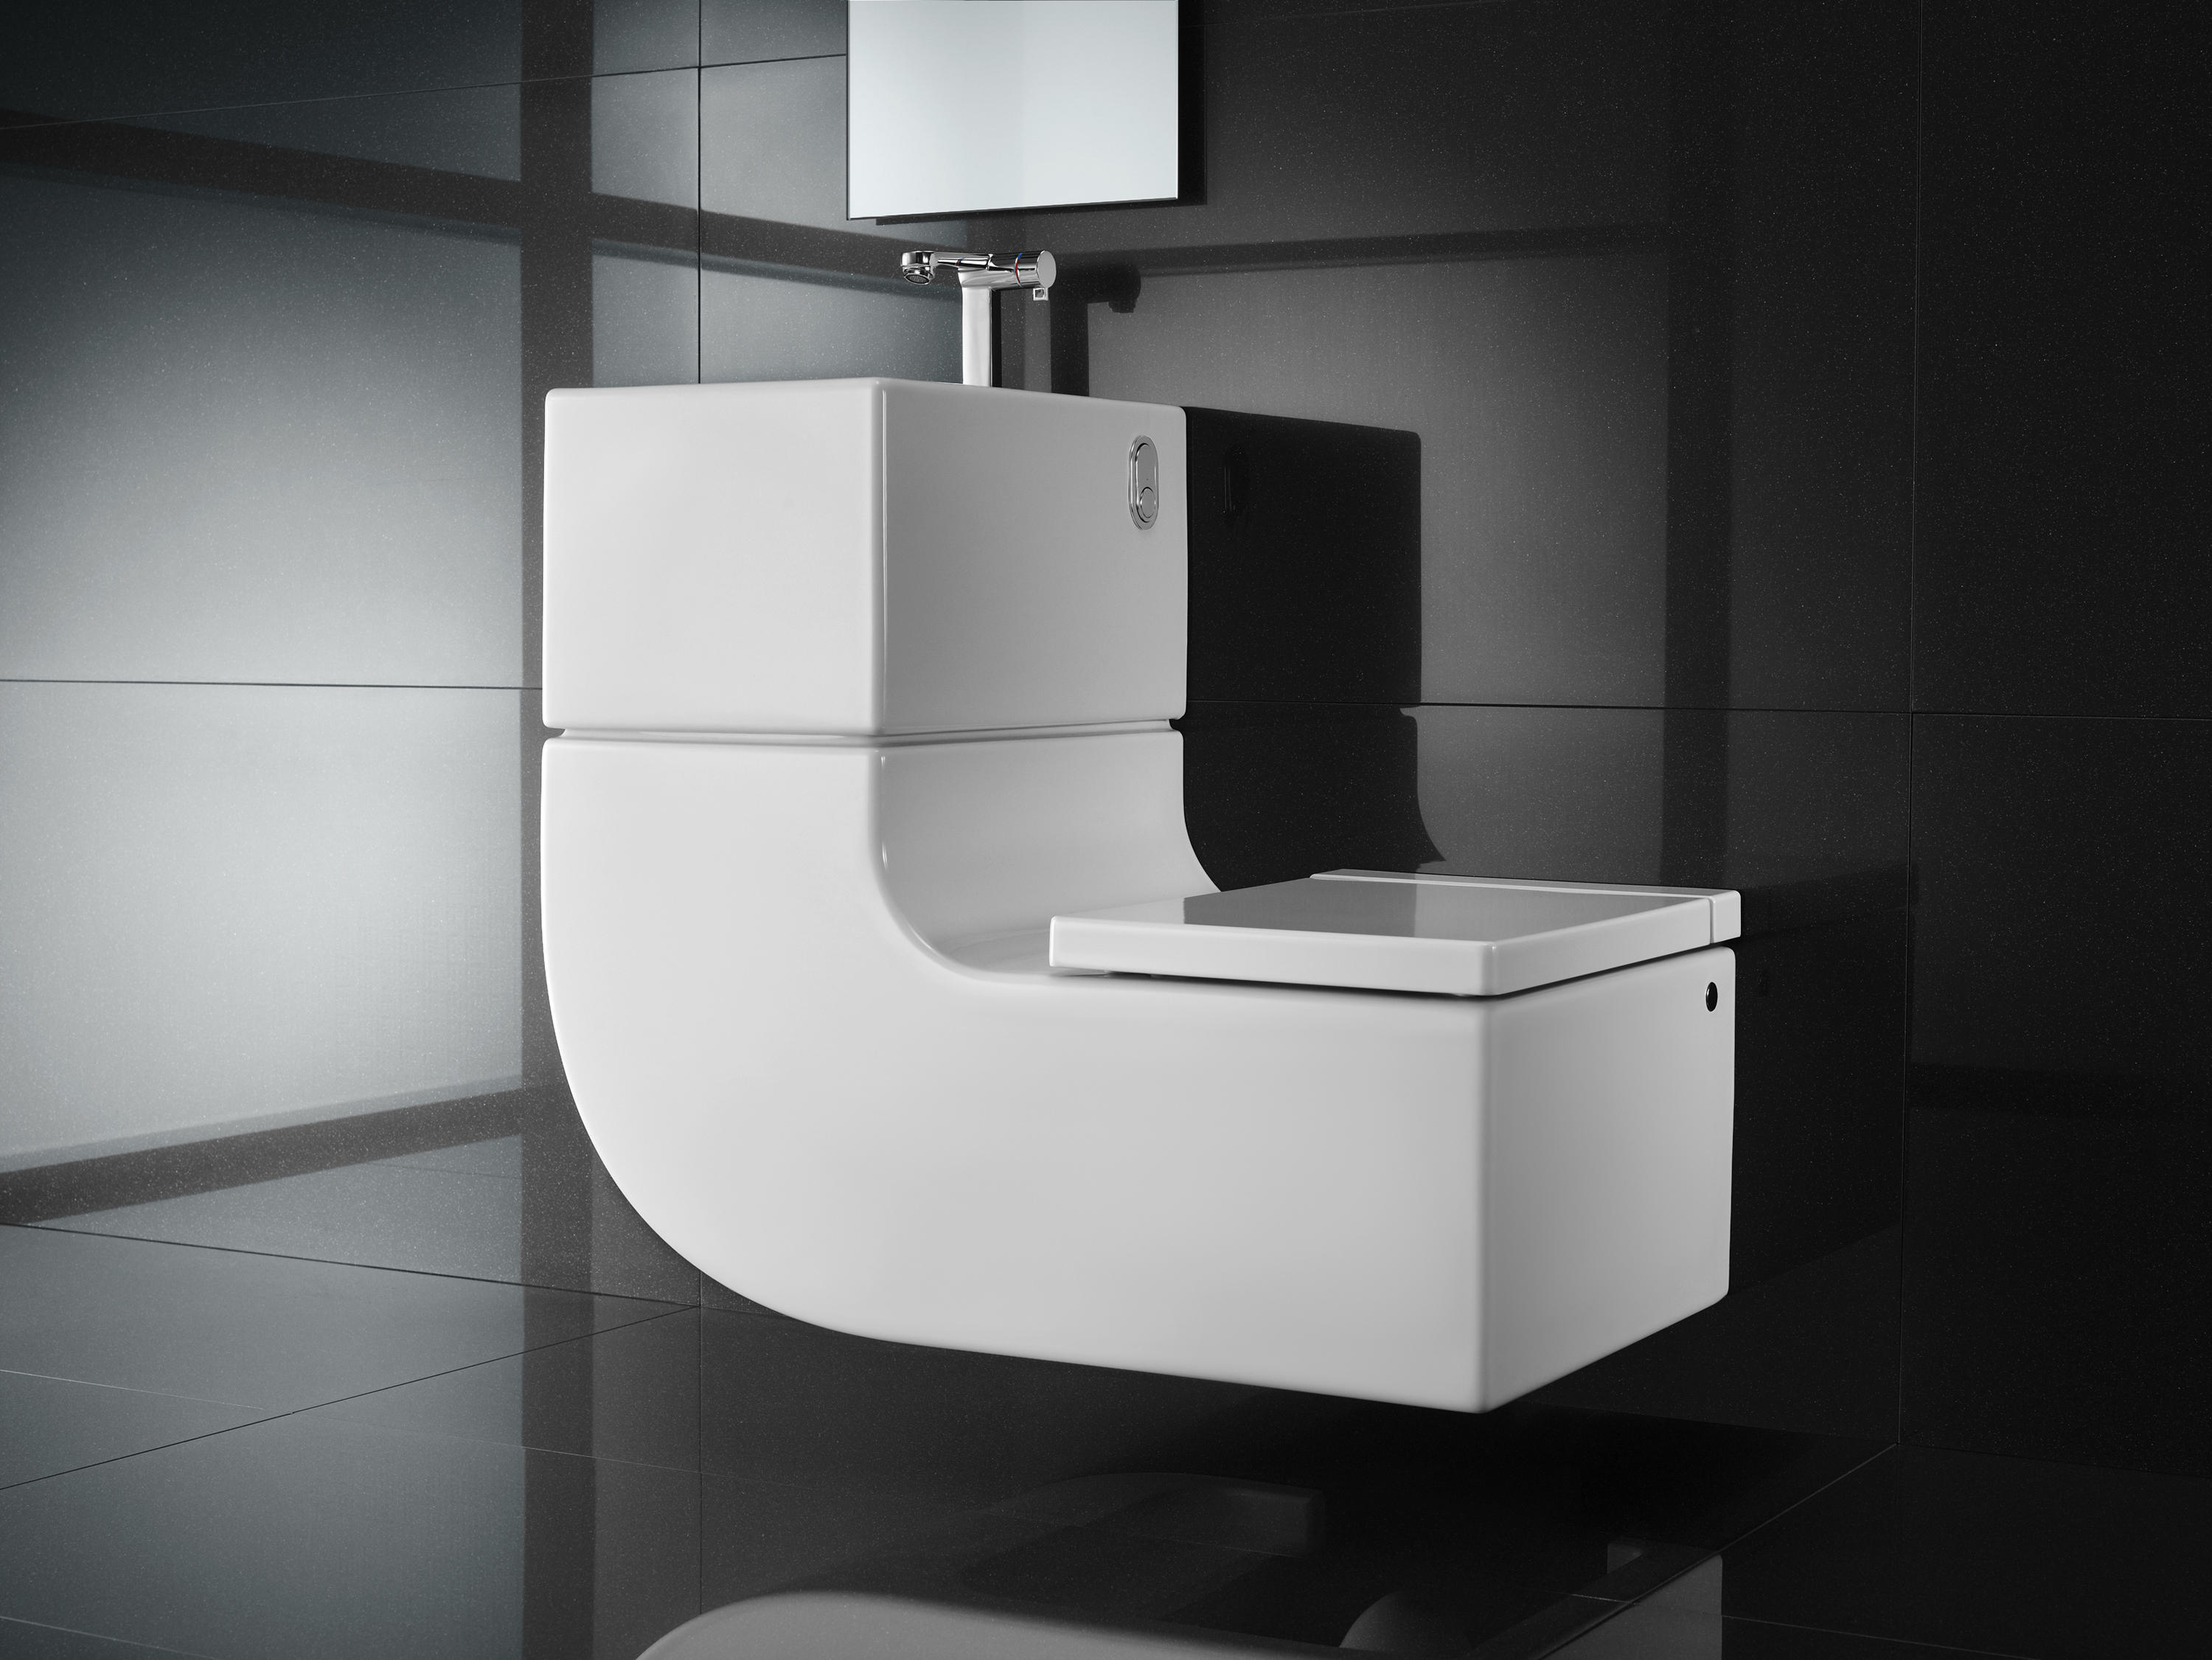 ww washbasin wc by roca - Roca Wash Basin